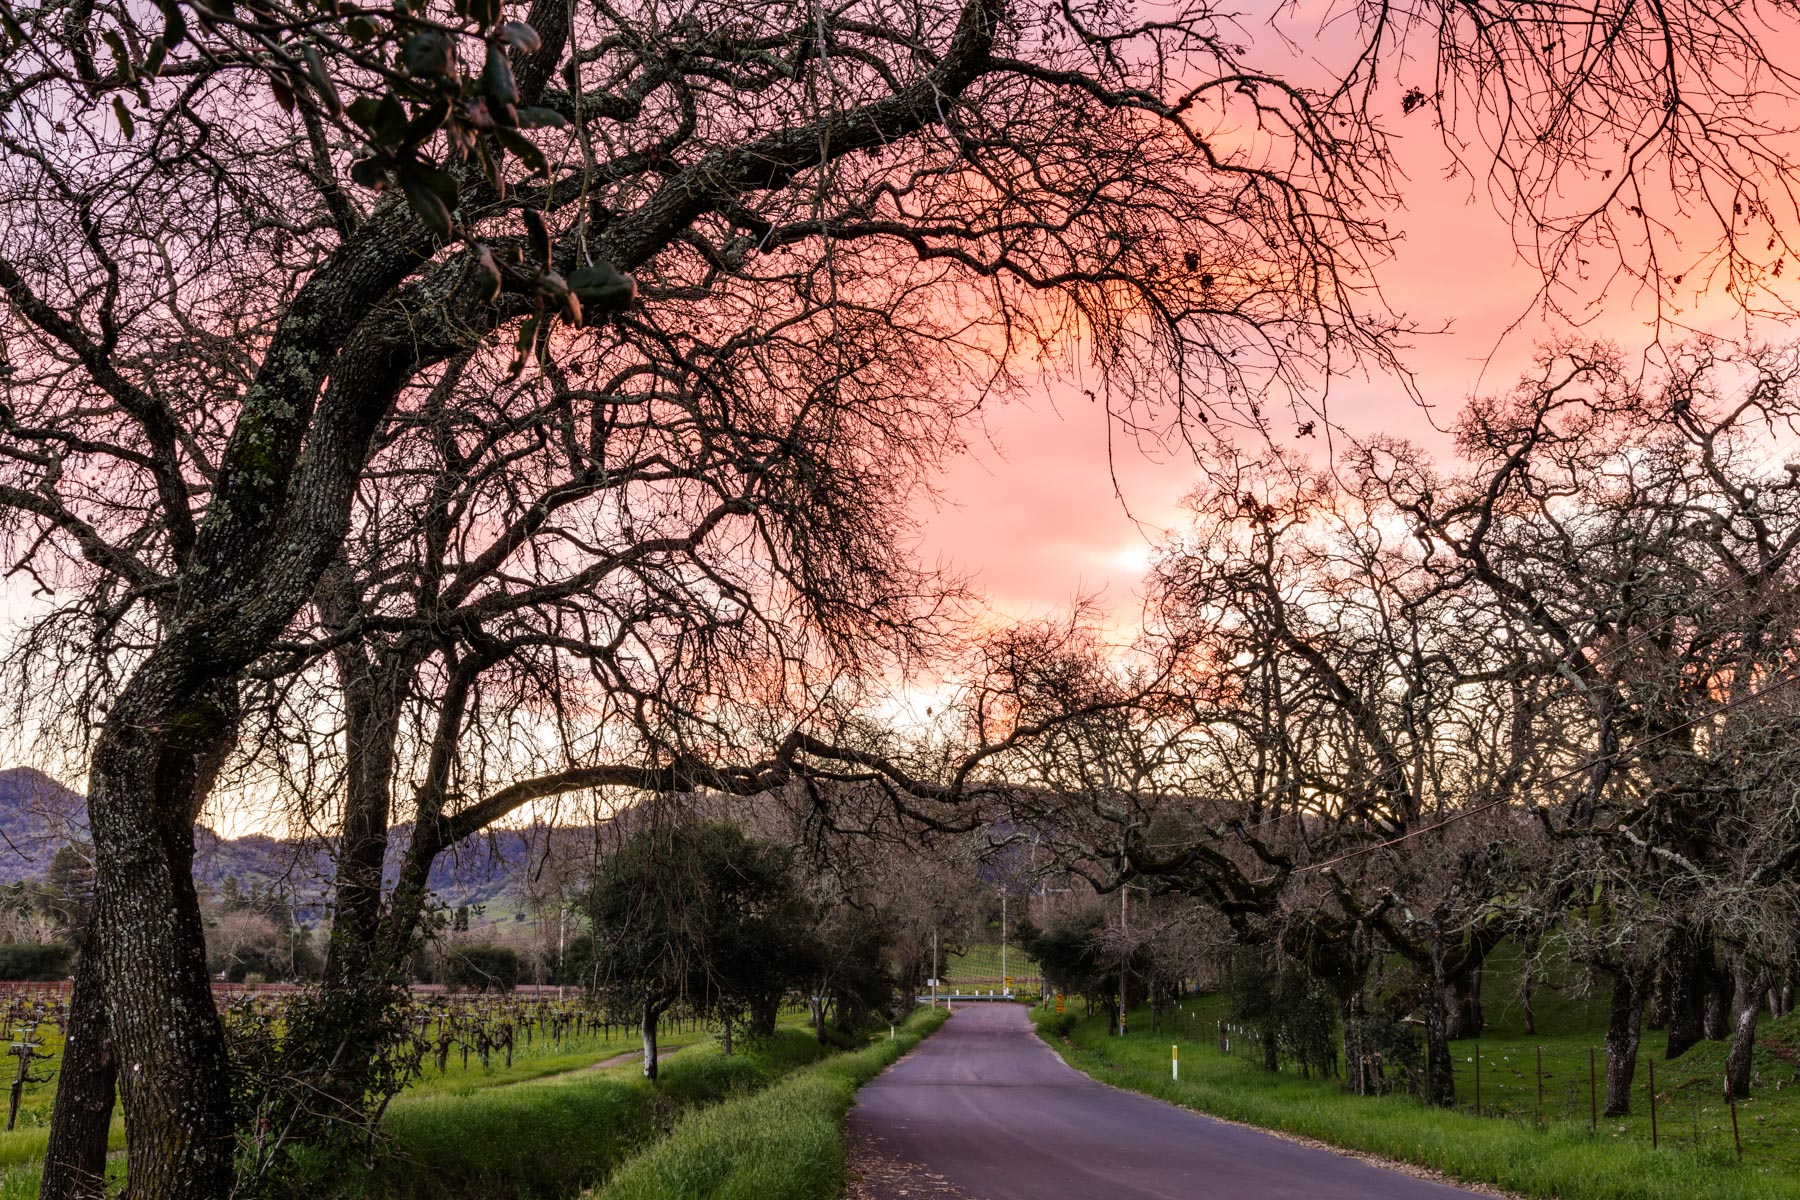 napa_valley_road_1702-19